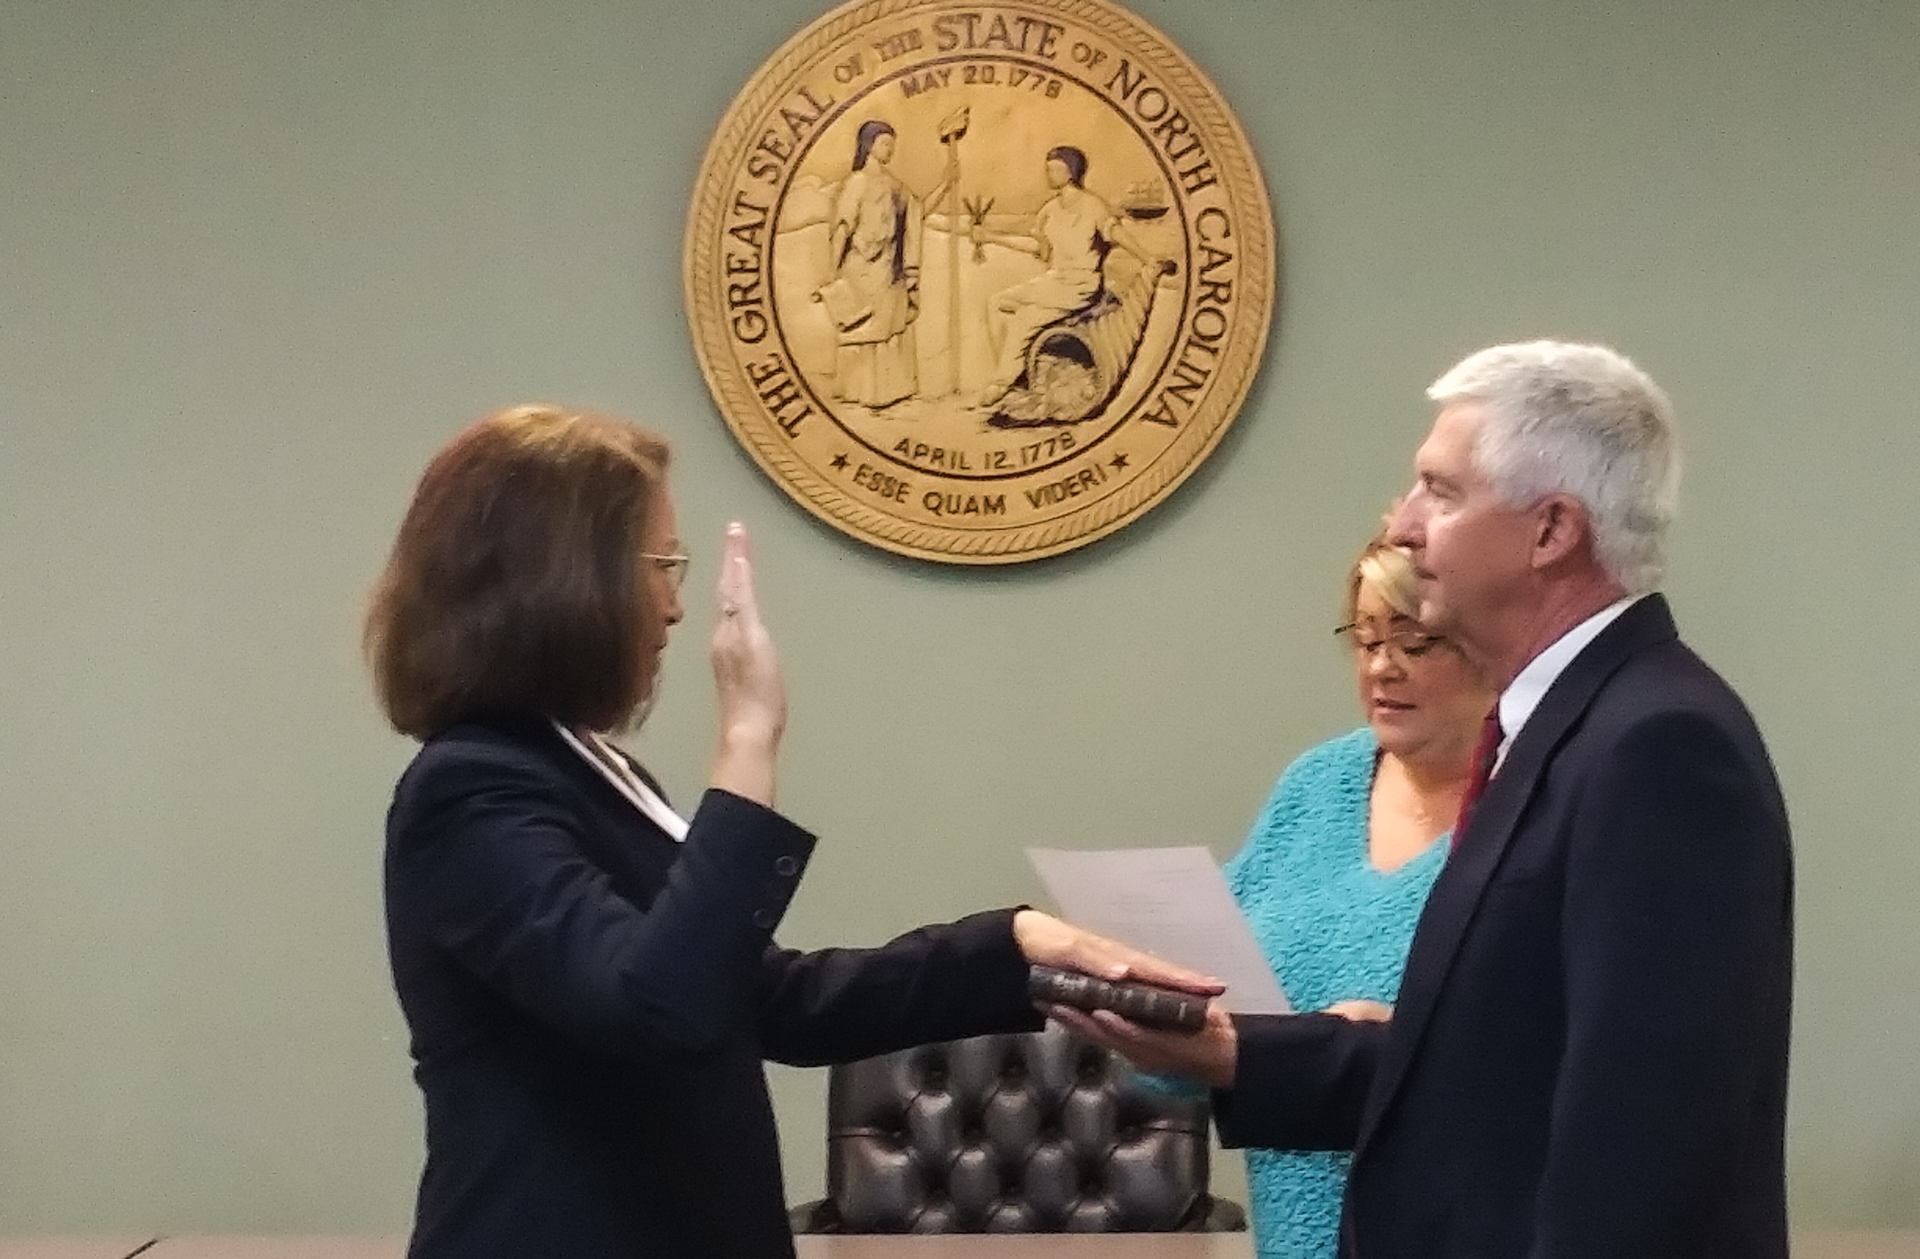 a person swearing in